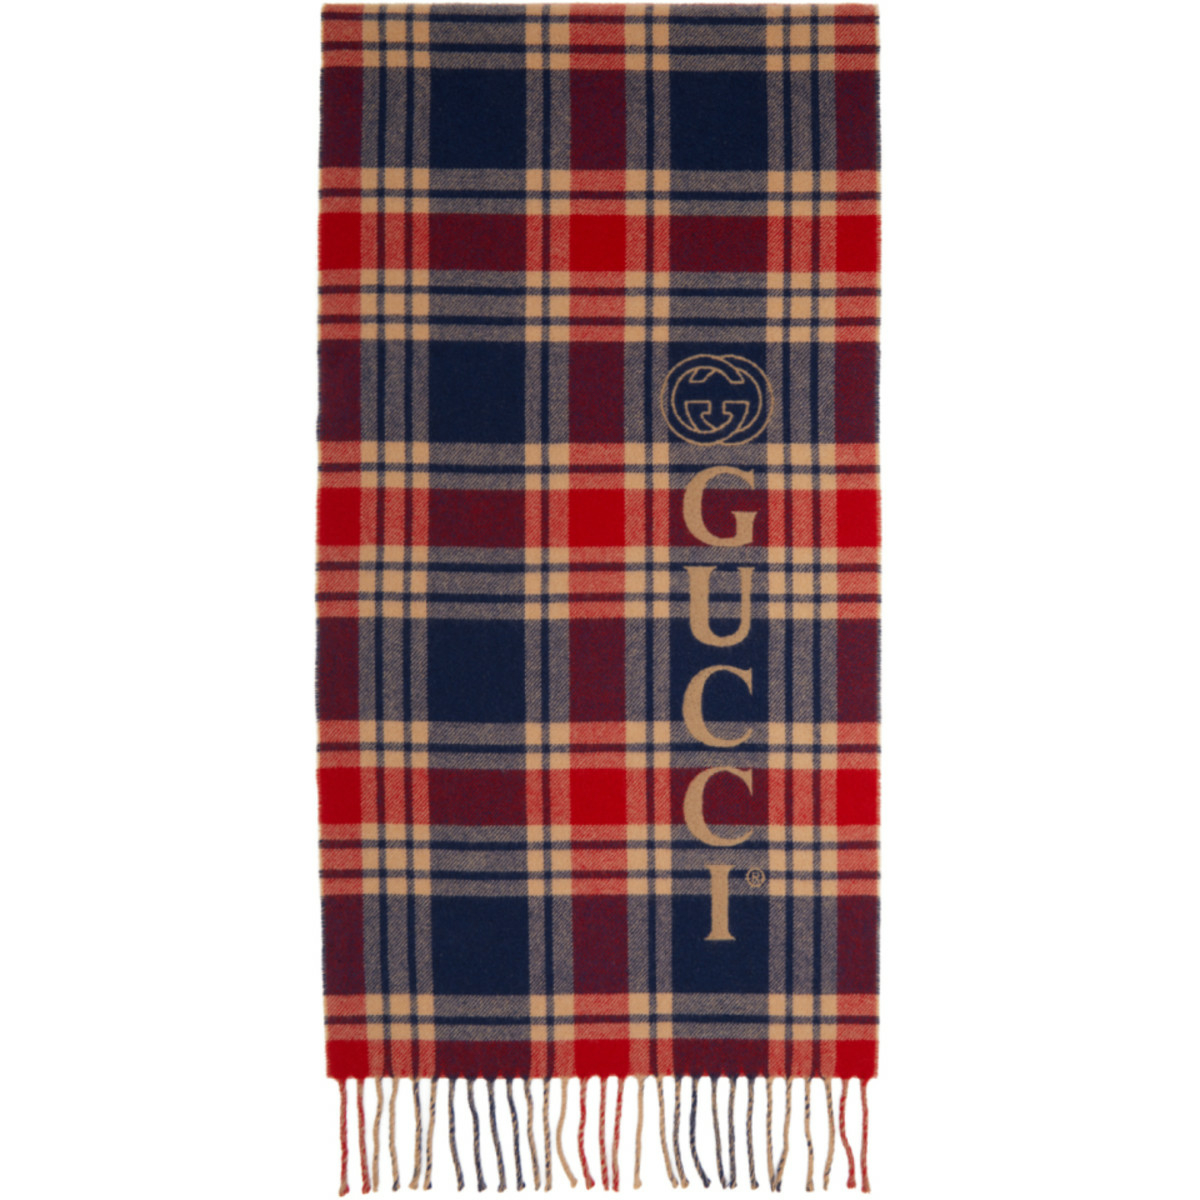 Men ACCESSORIES - GOOFASH - Mens SCARFS